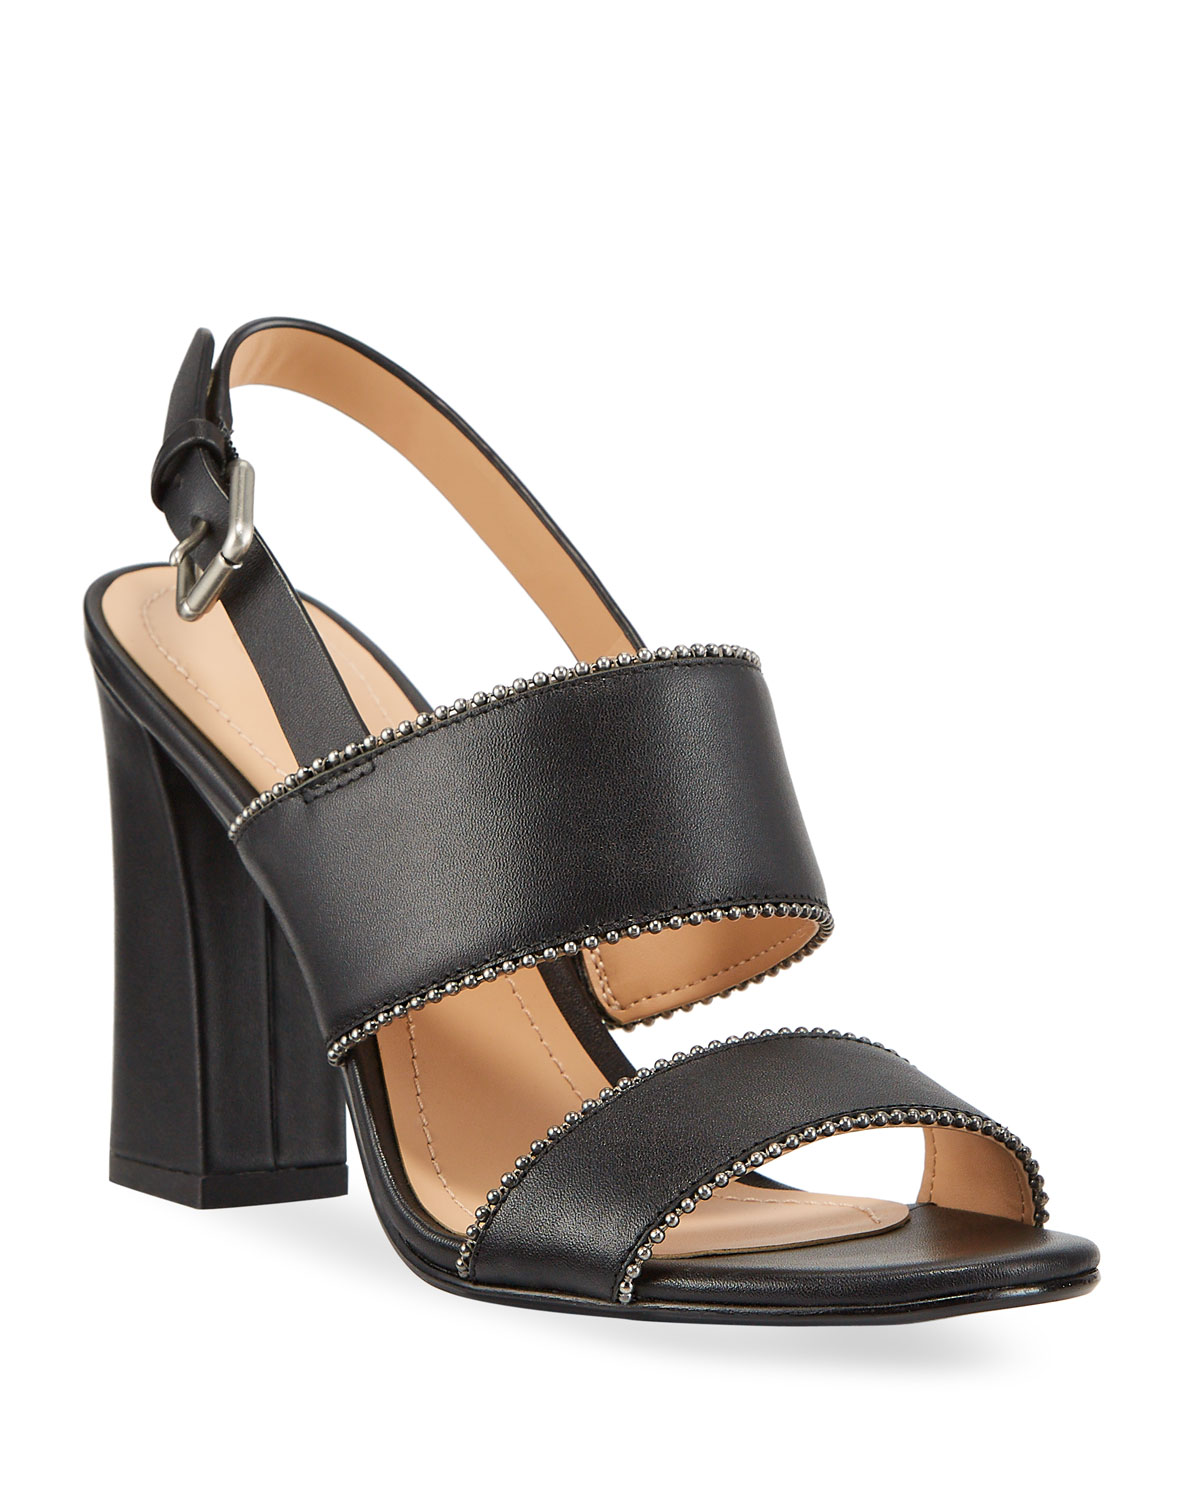 Rylie Bead-Chain Leather Slingback Sandals